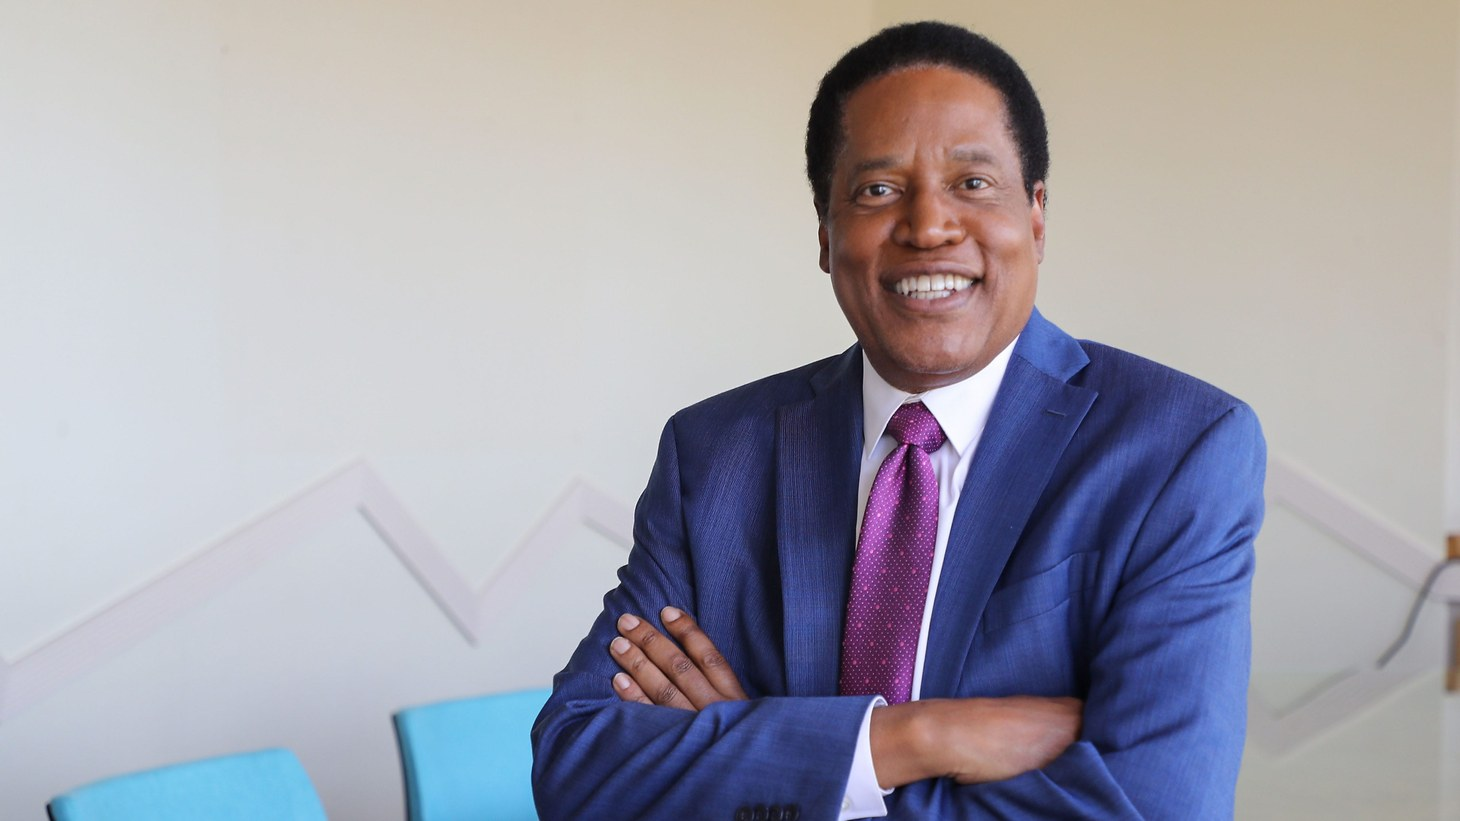 Conservative talk show host Larry Elder is running for California governor in the recall election.